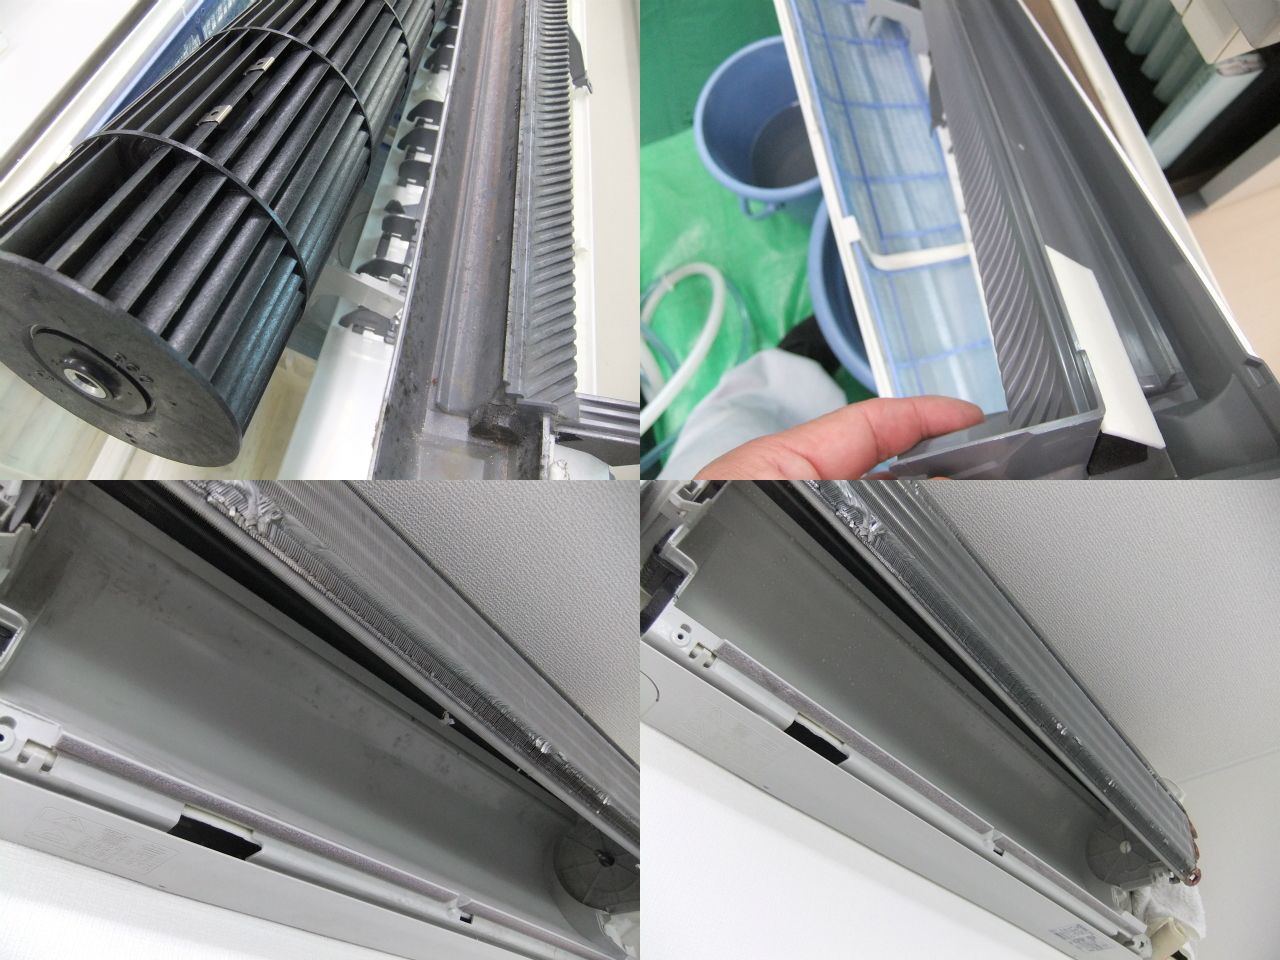 http://ajras.net/images/120419-aircon1.jpg